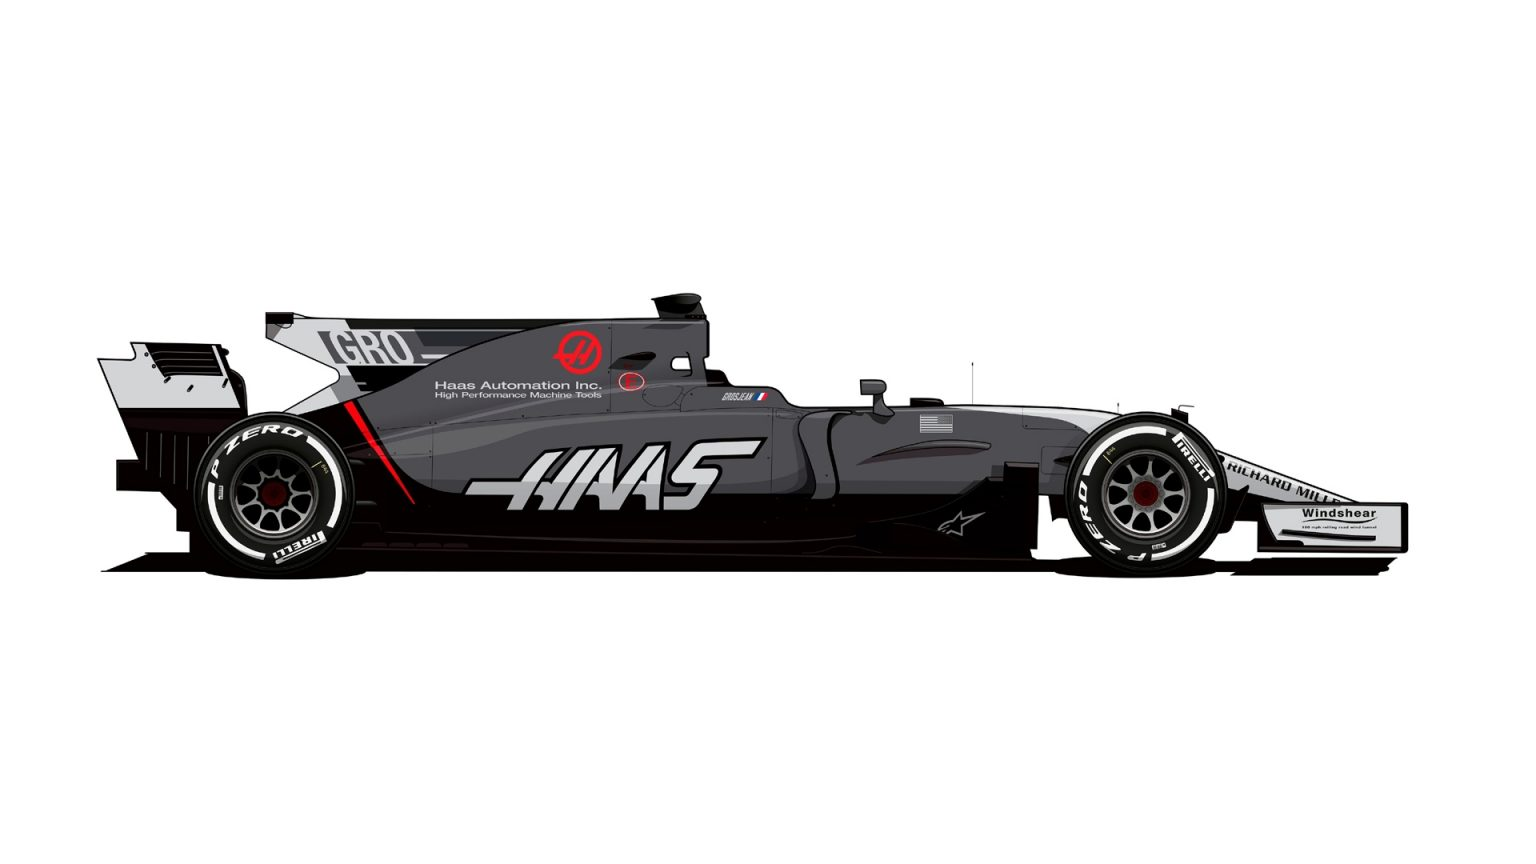 Haas F1 Revised Livery 2.jpg